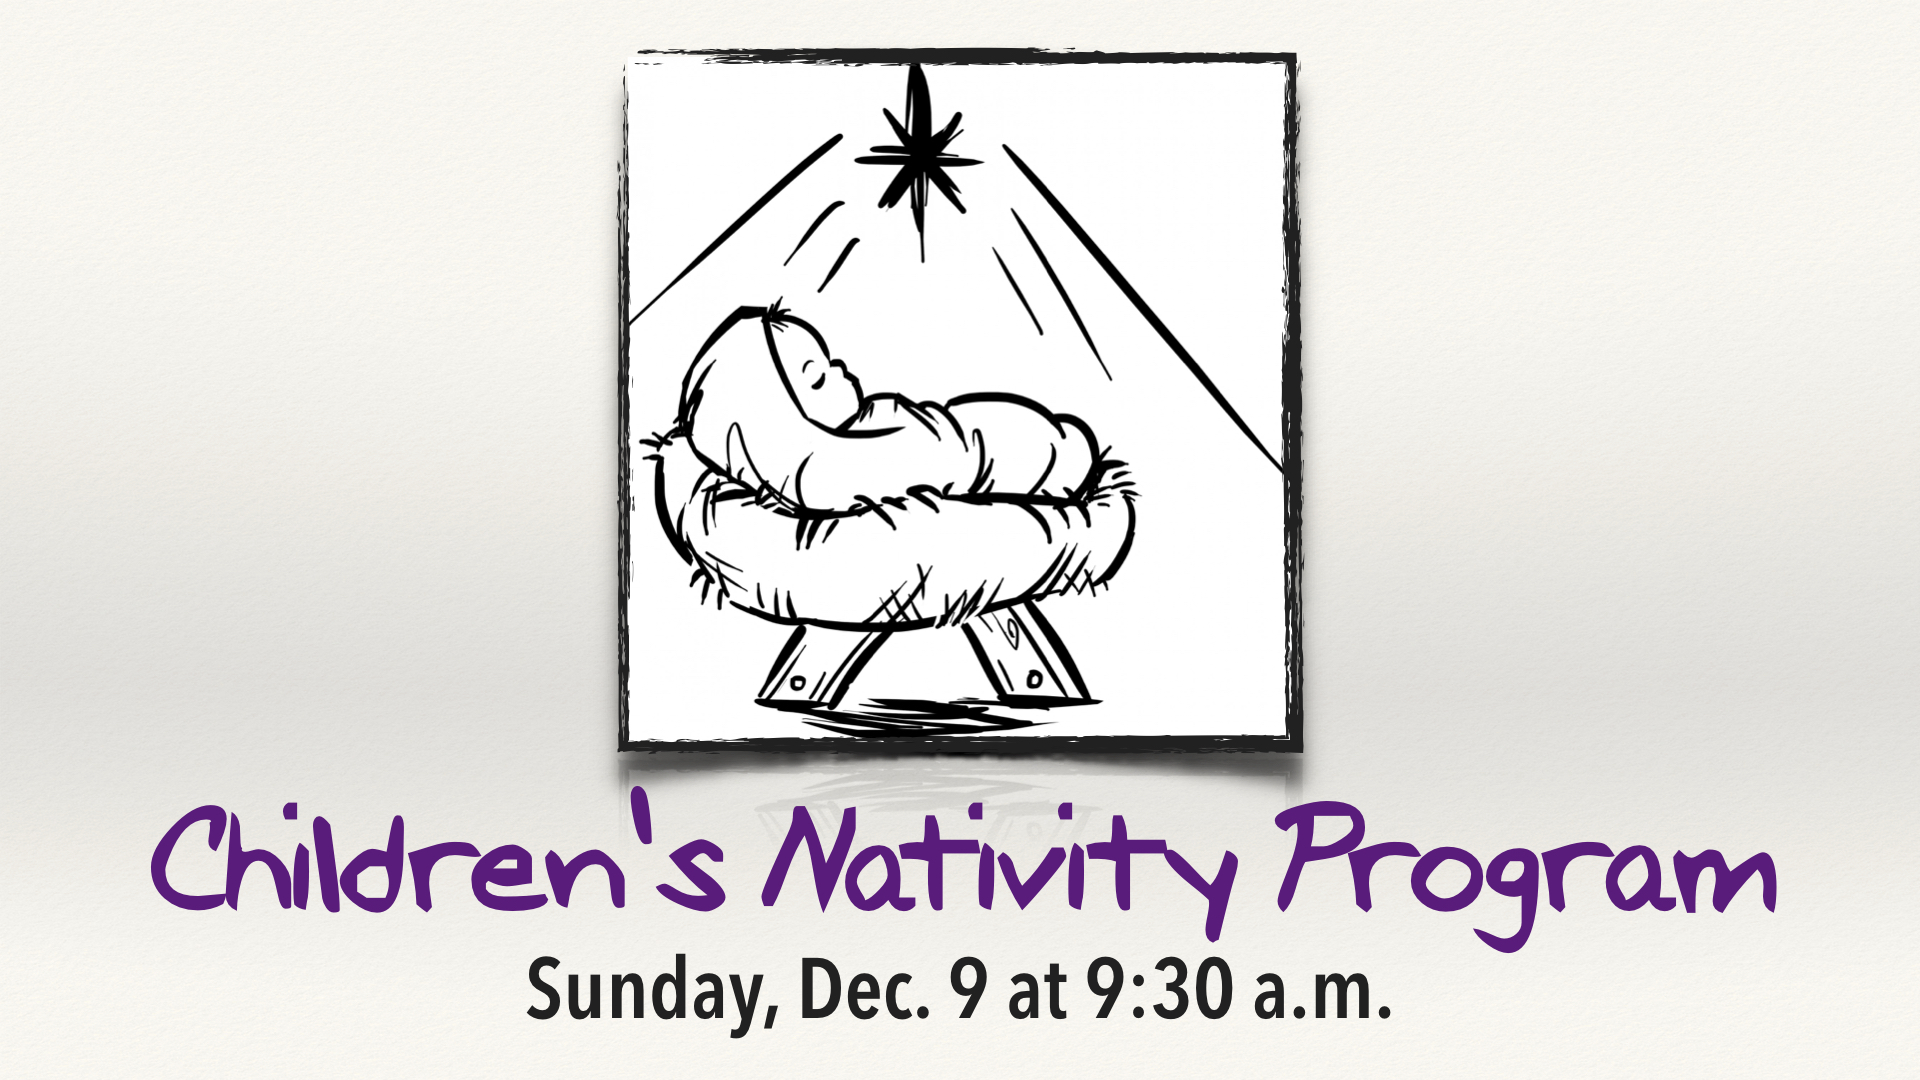 Children's Nativity Program